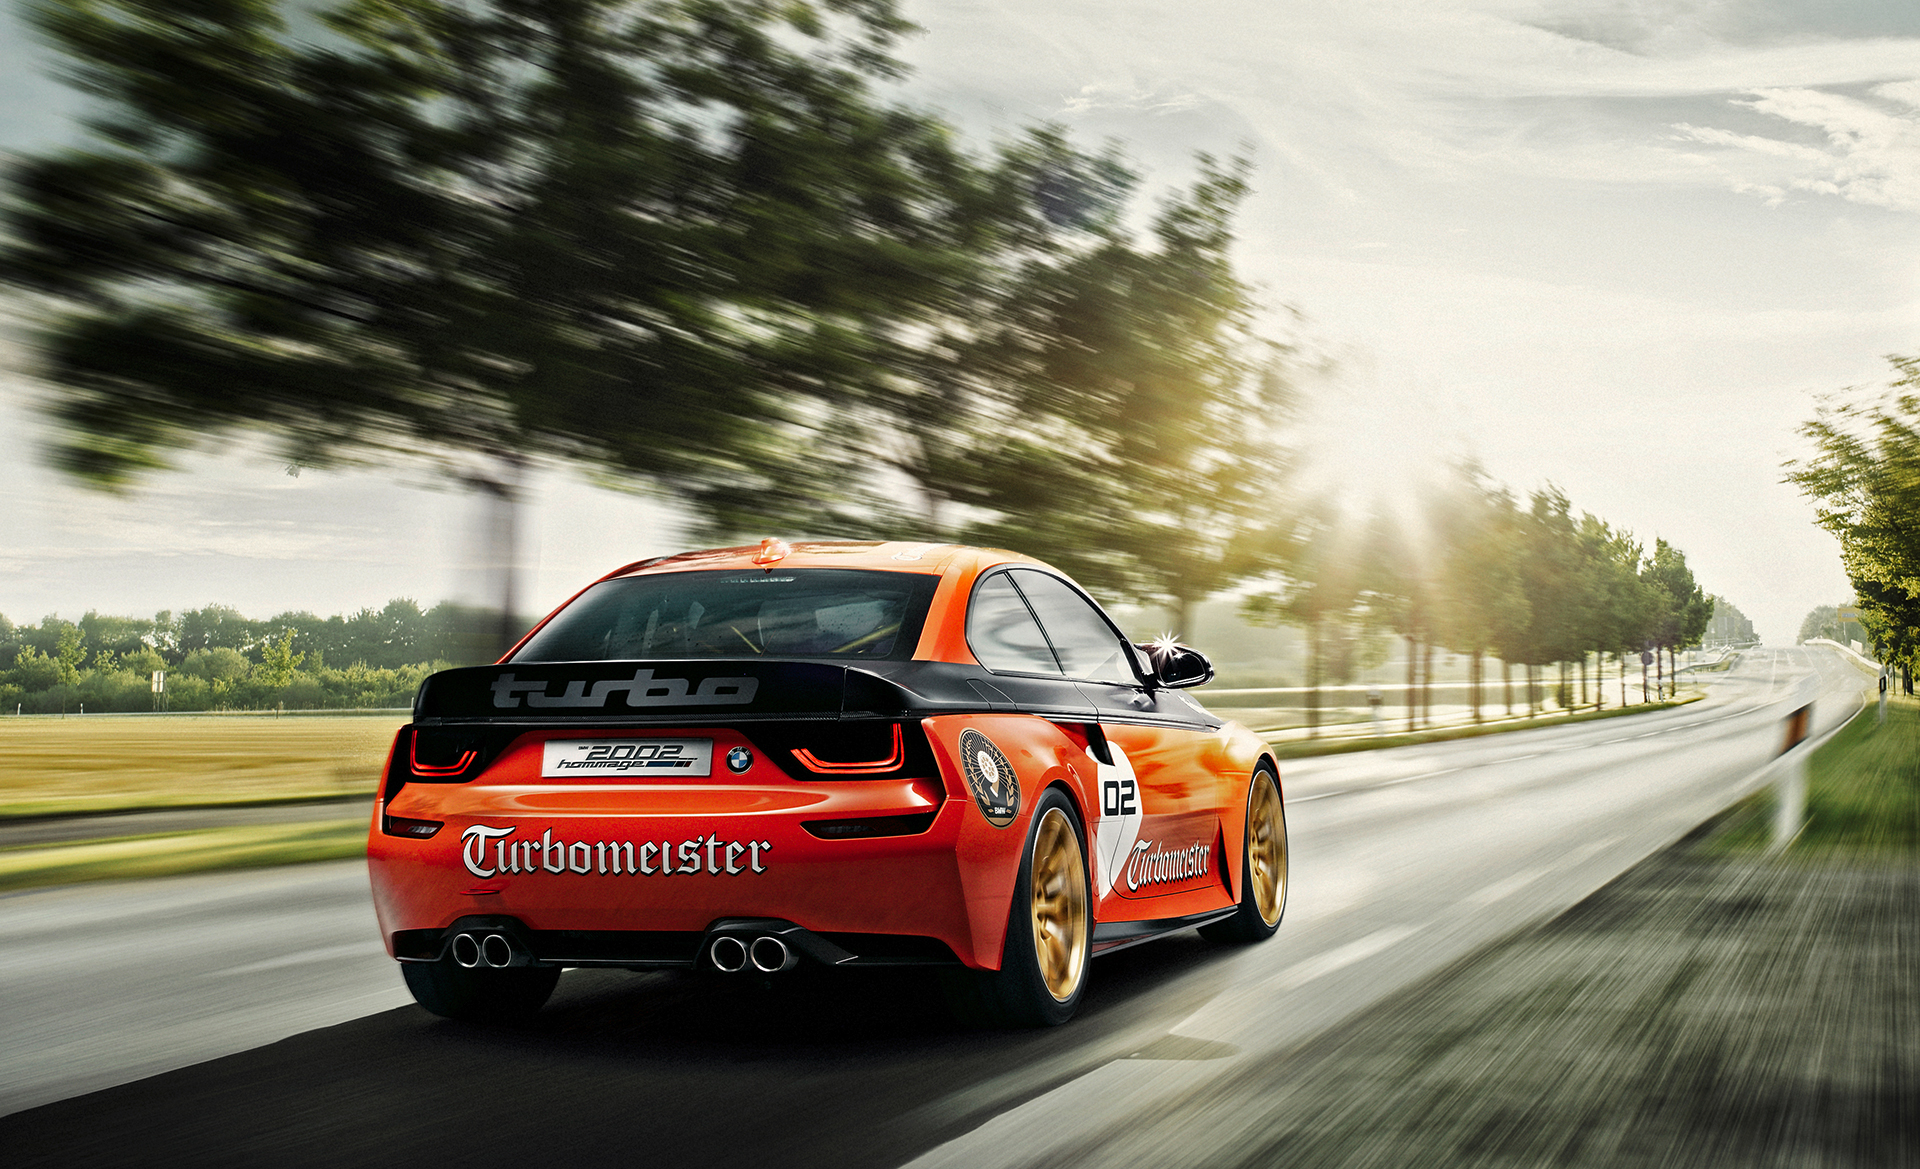 BMW 2002 Hommage Turbomeister Concept - 2016 - rear / arrière - on road